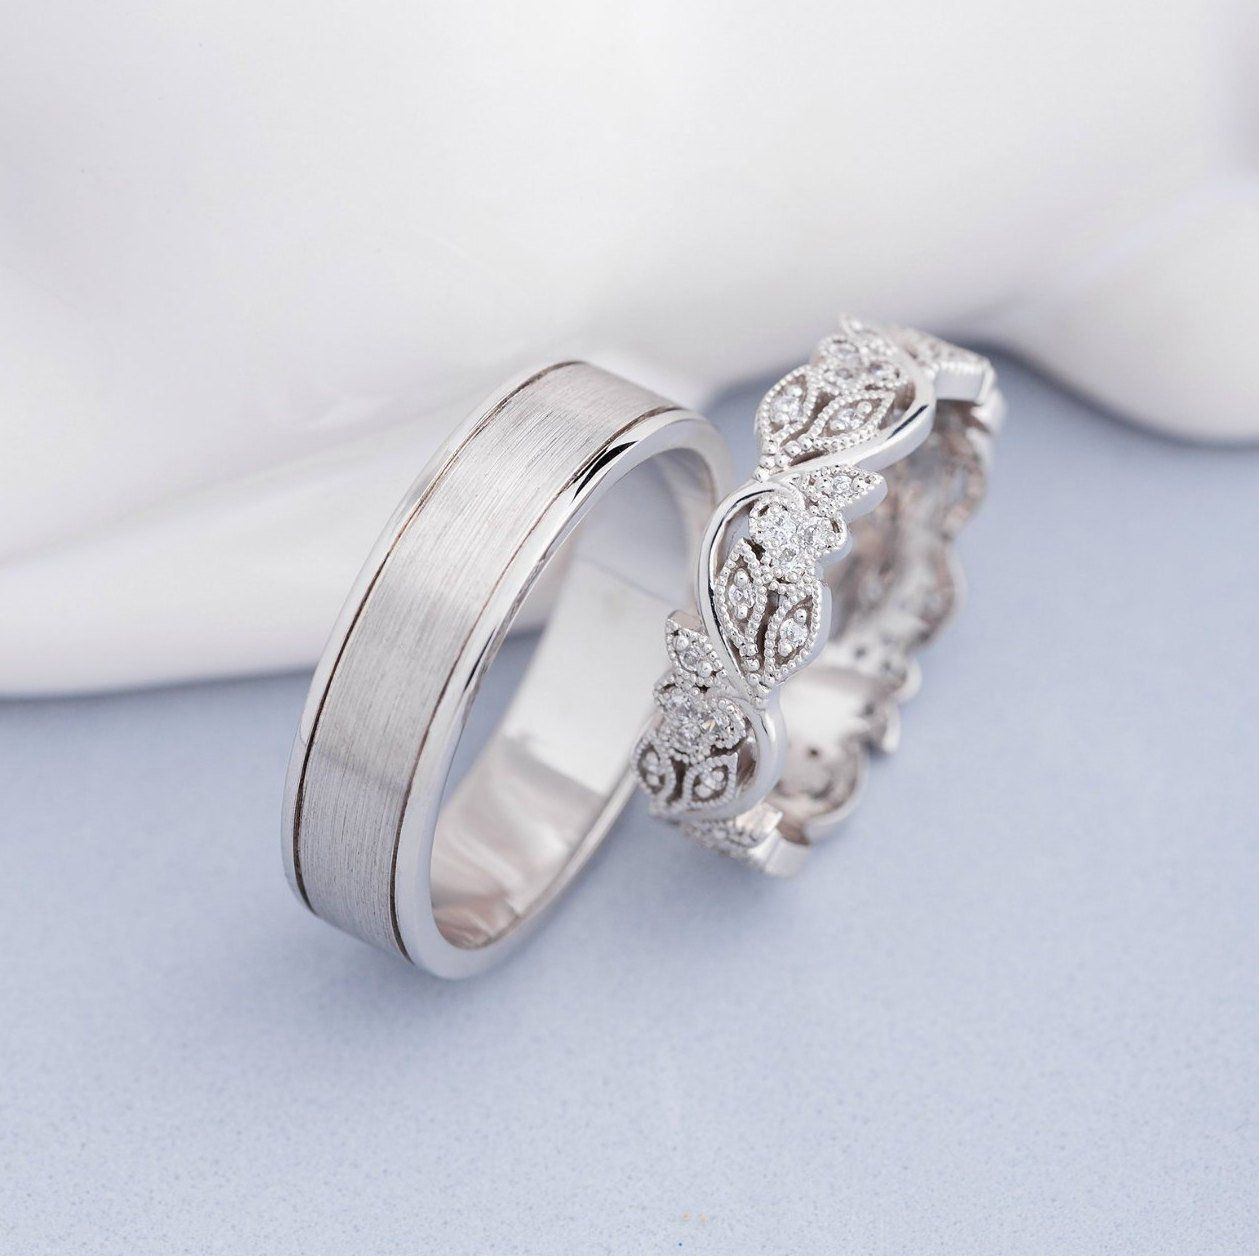 Gold Wedding Bands With Diamonds Unique Wedding Bands Couple